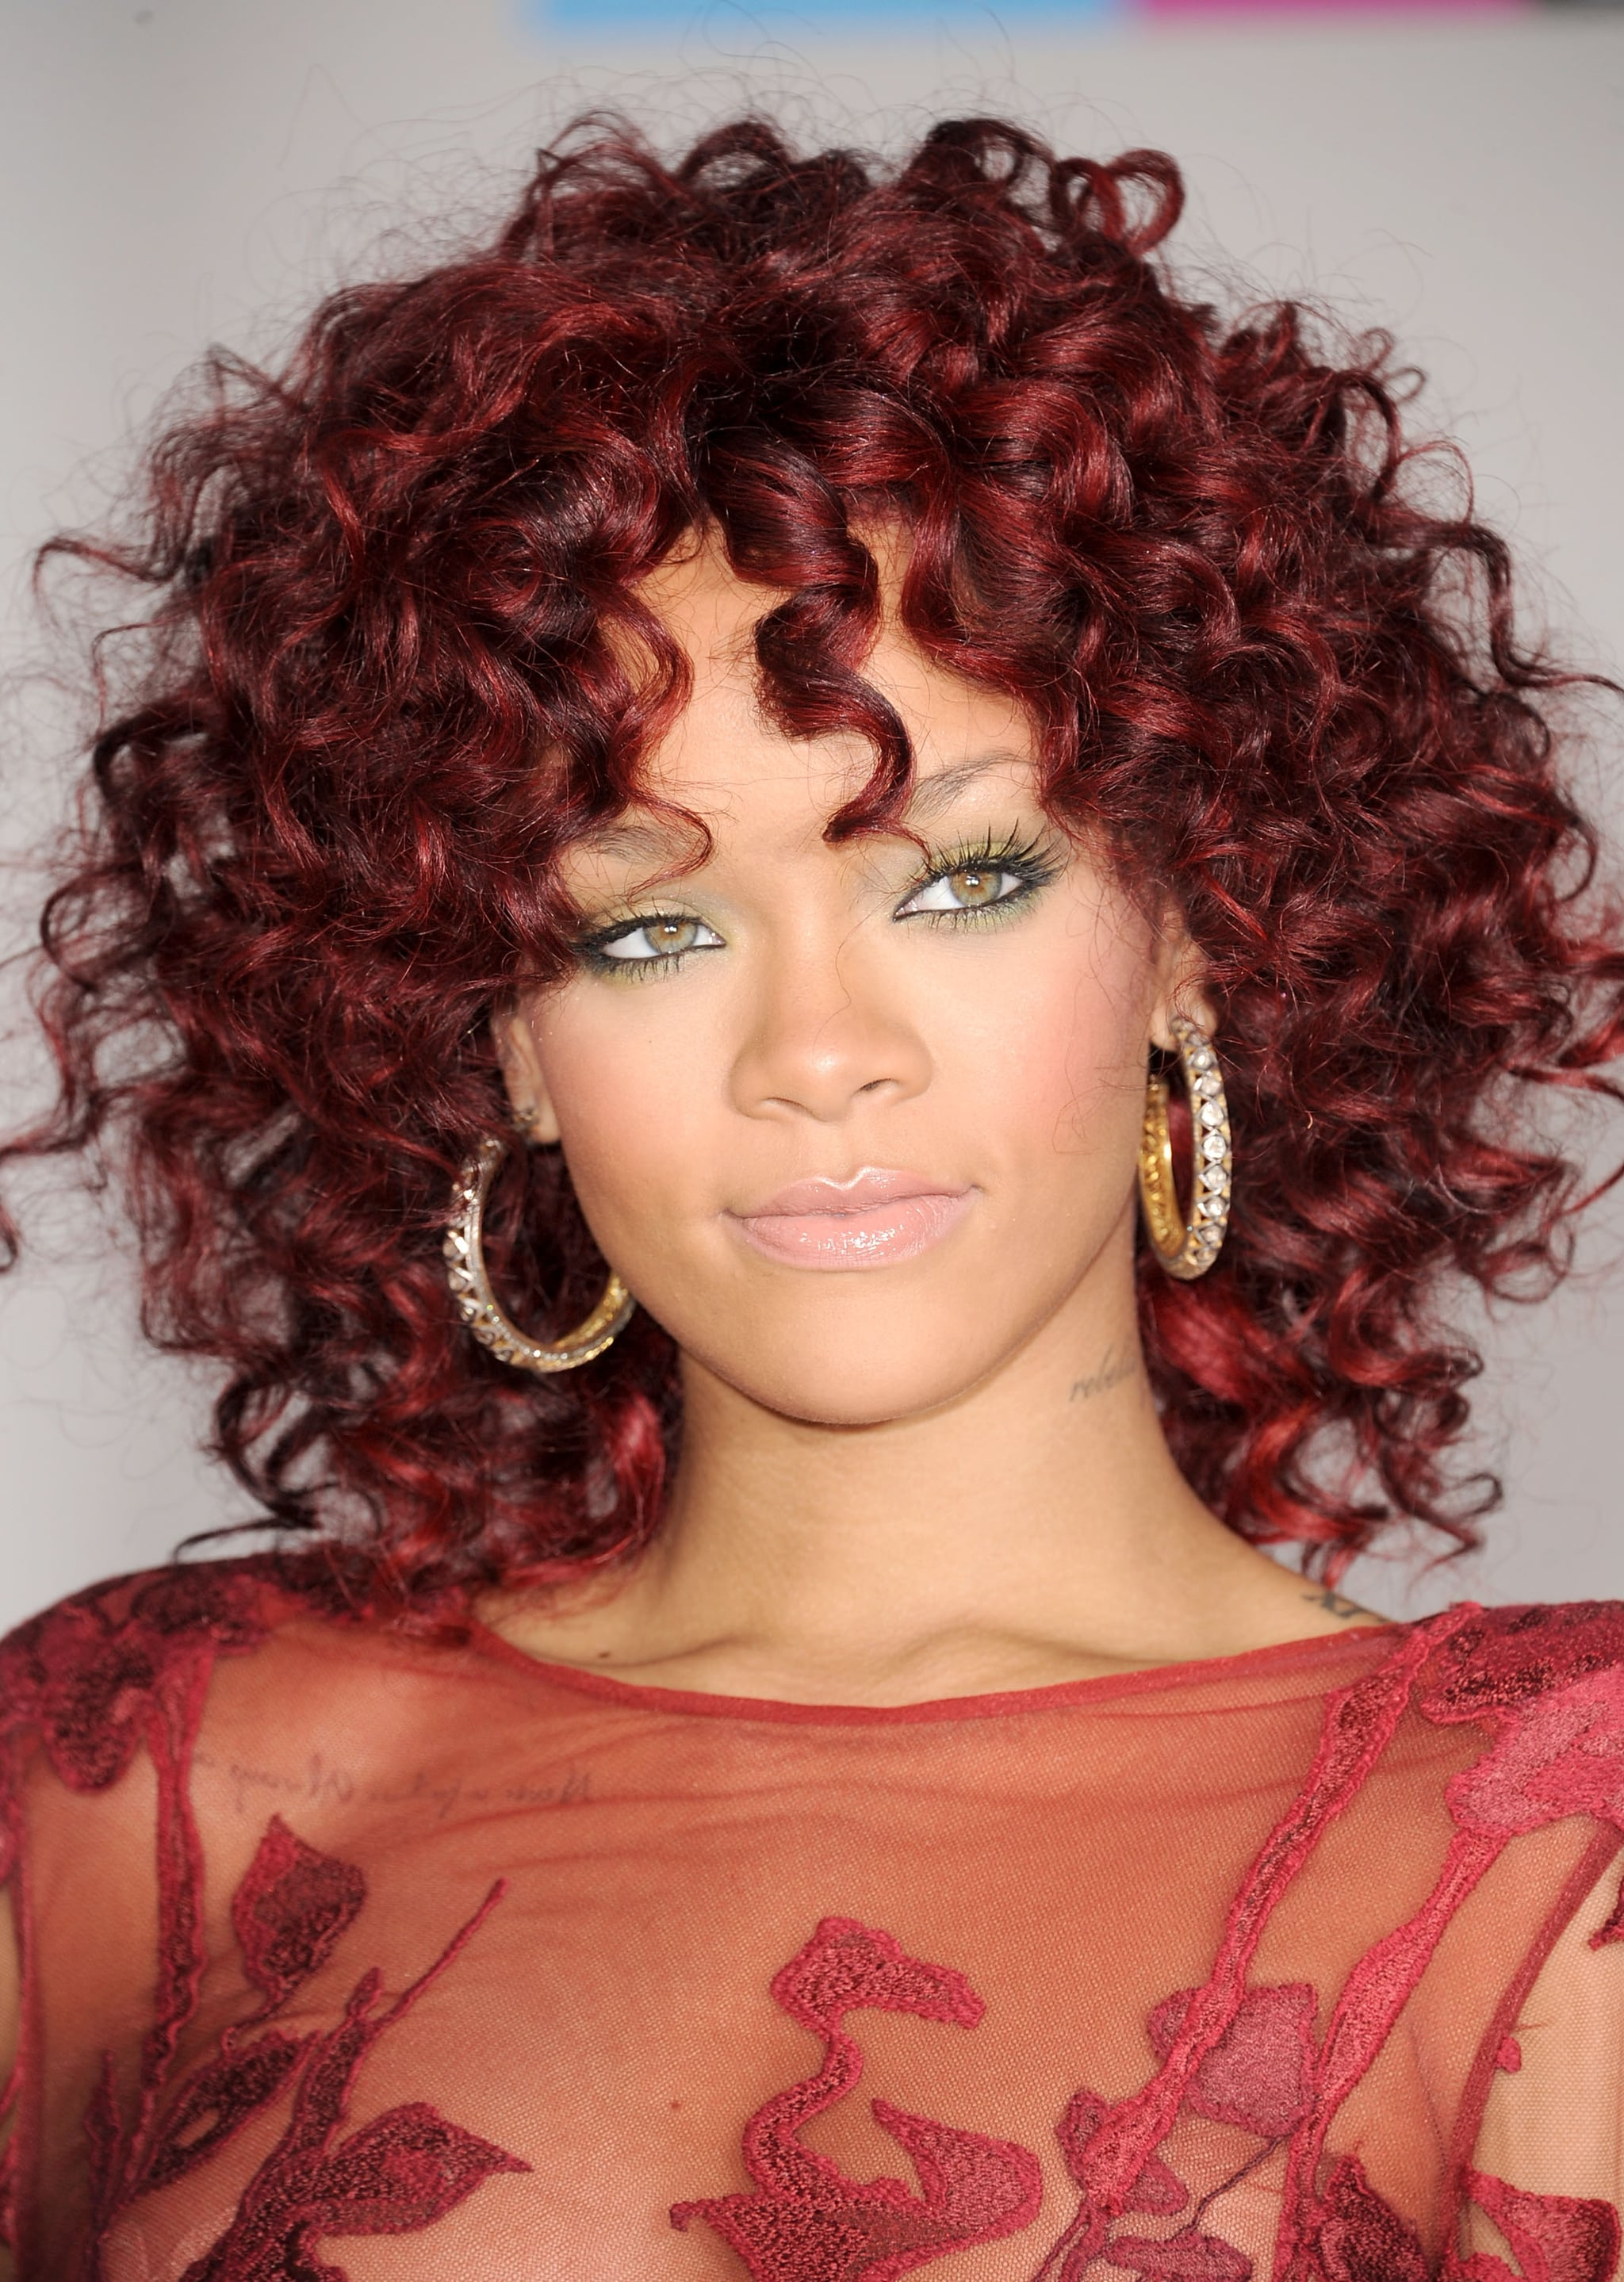 rihanna hair style 2010 the best looks rihanna has rocked so far 6140